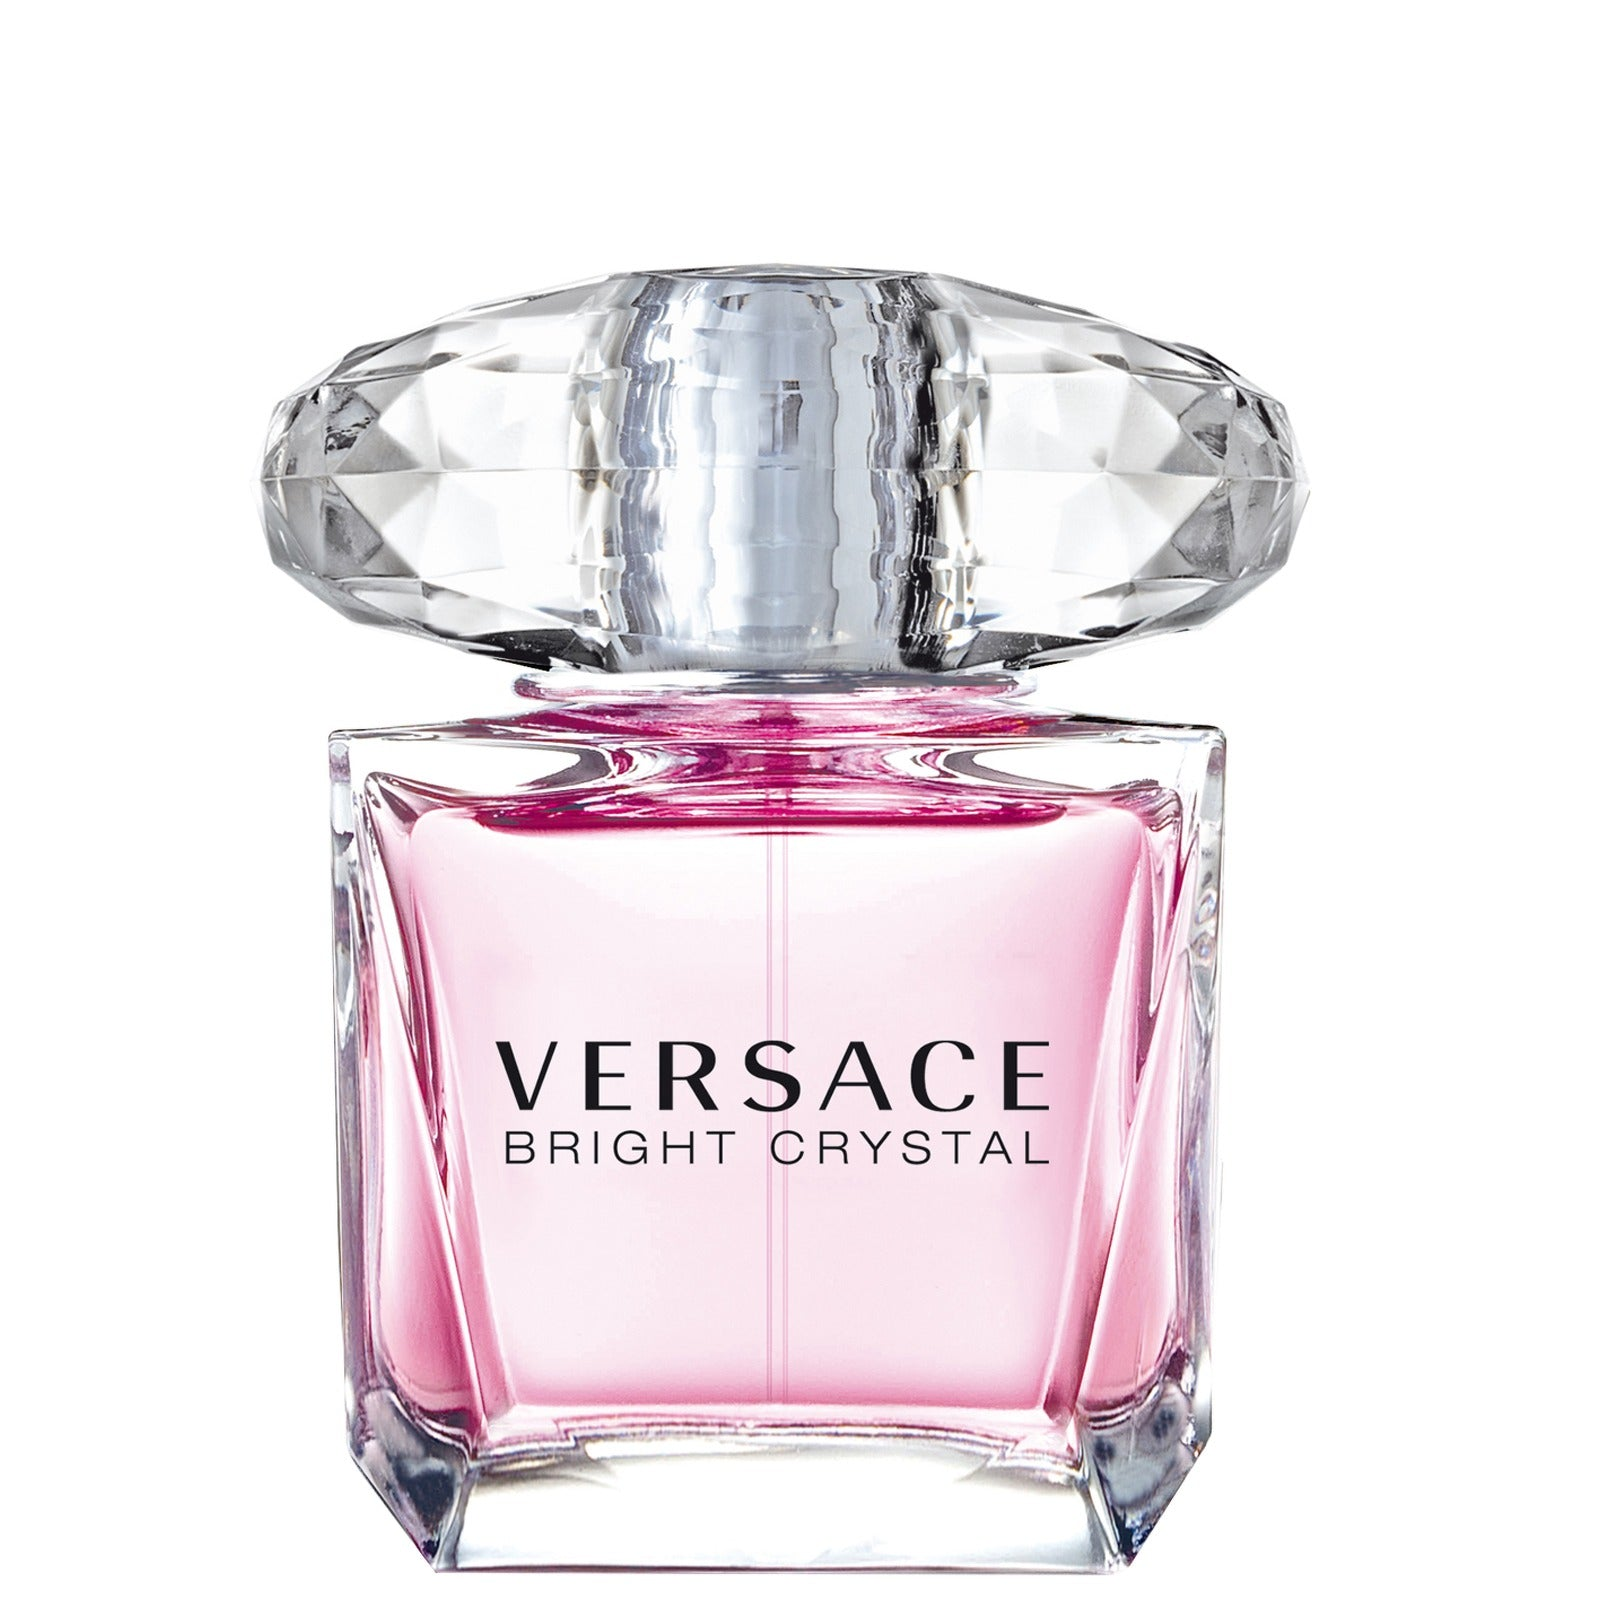 Versace Bright Crystal Eau de Toilette 90ml Spray, Shaving & Grooming by Low Cost Gifts